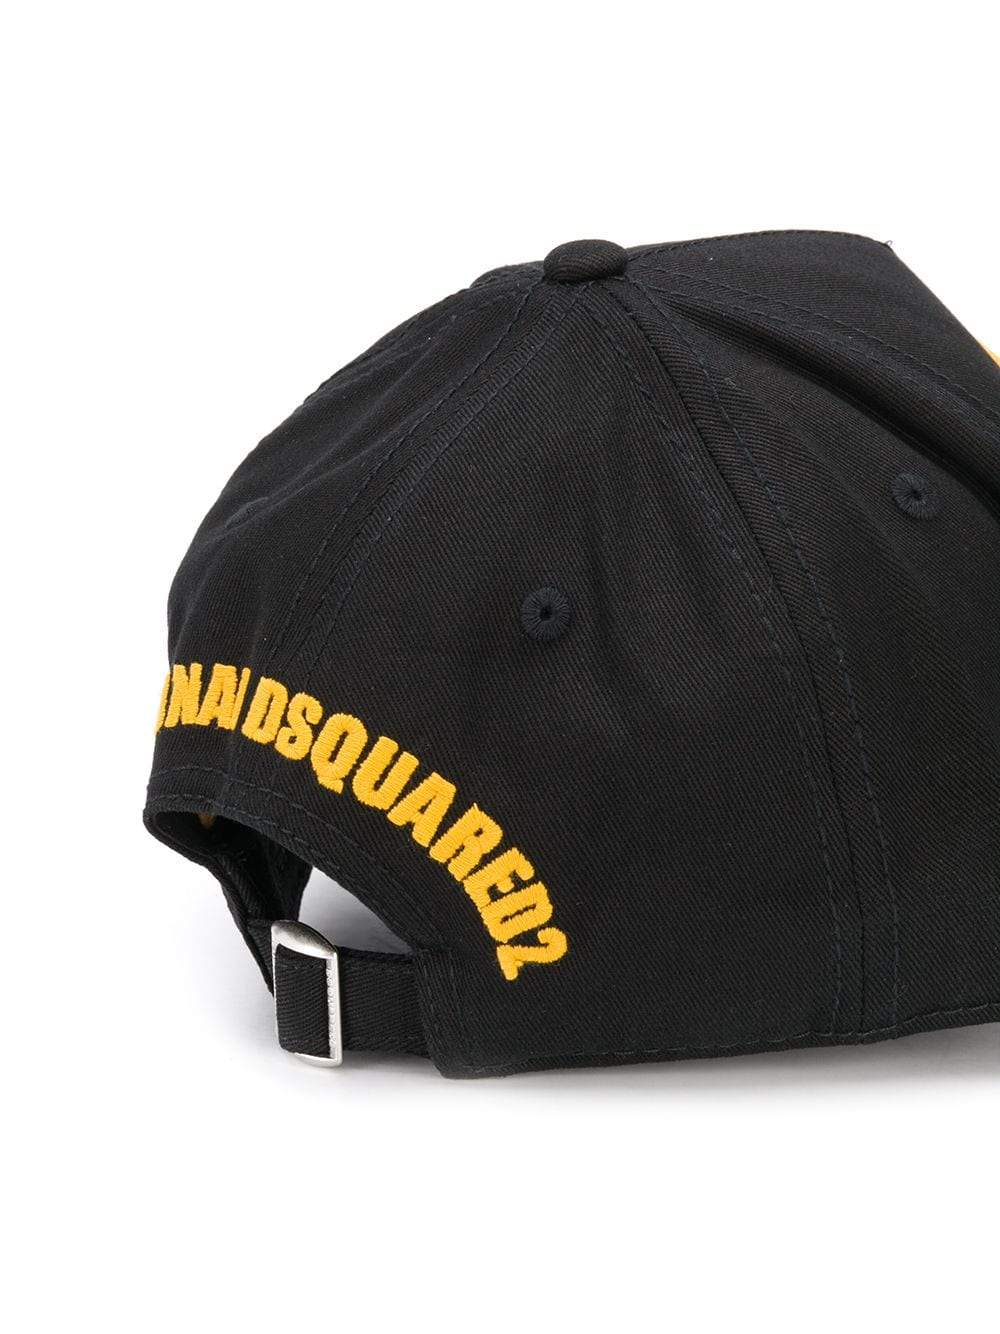 DSQUARED2 F*ckin' Freezing Cap Black